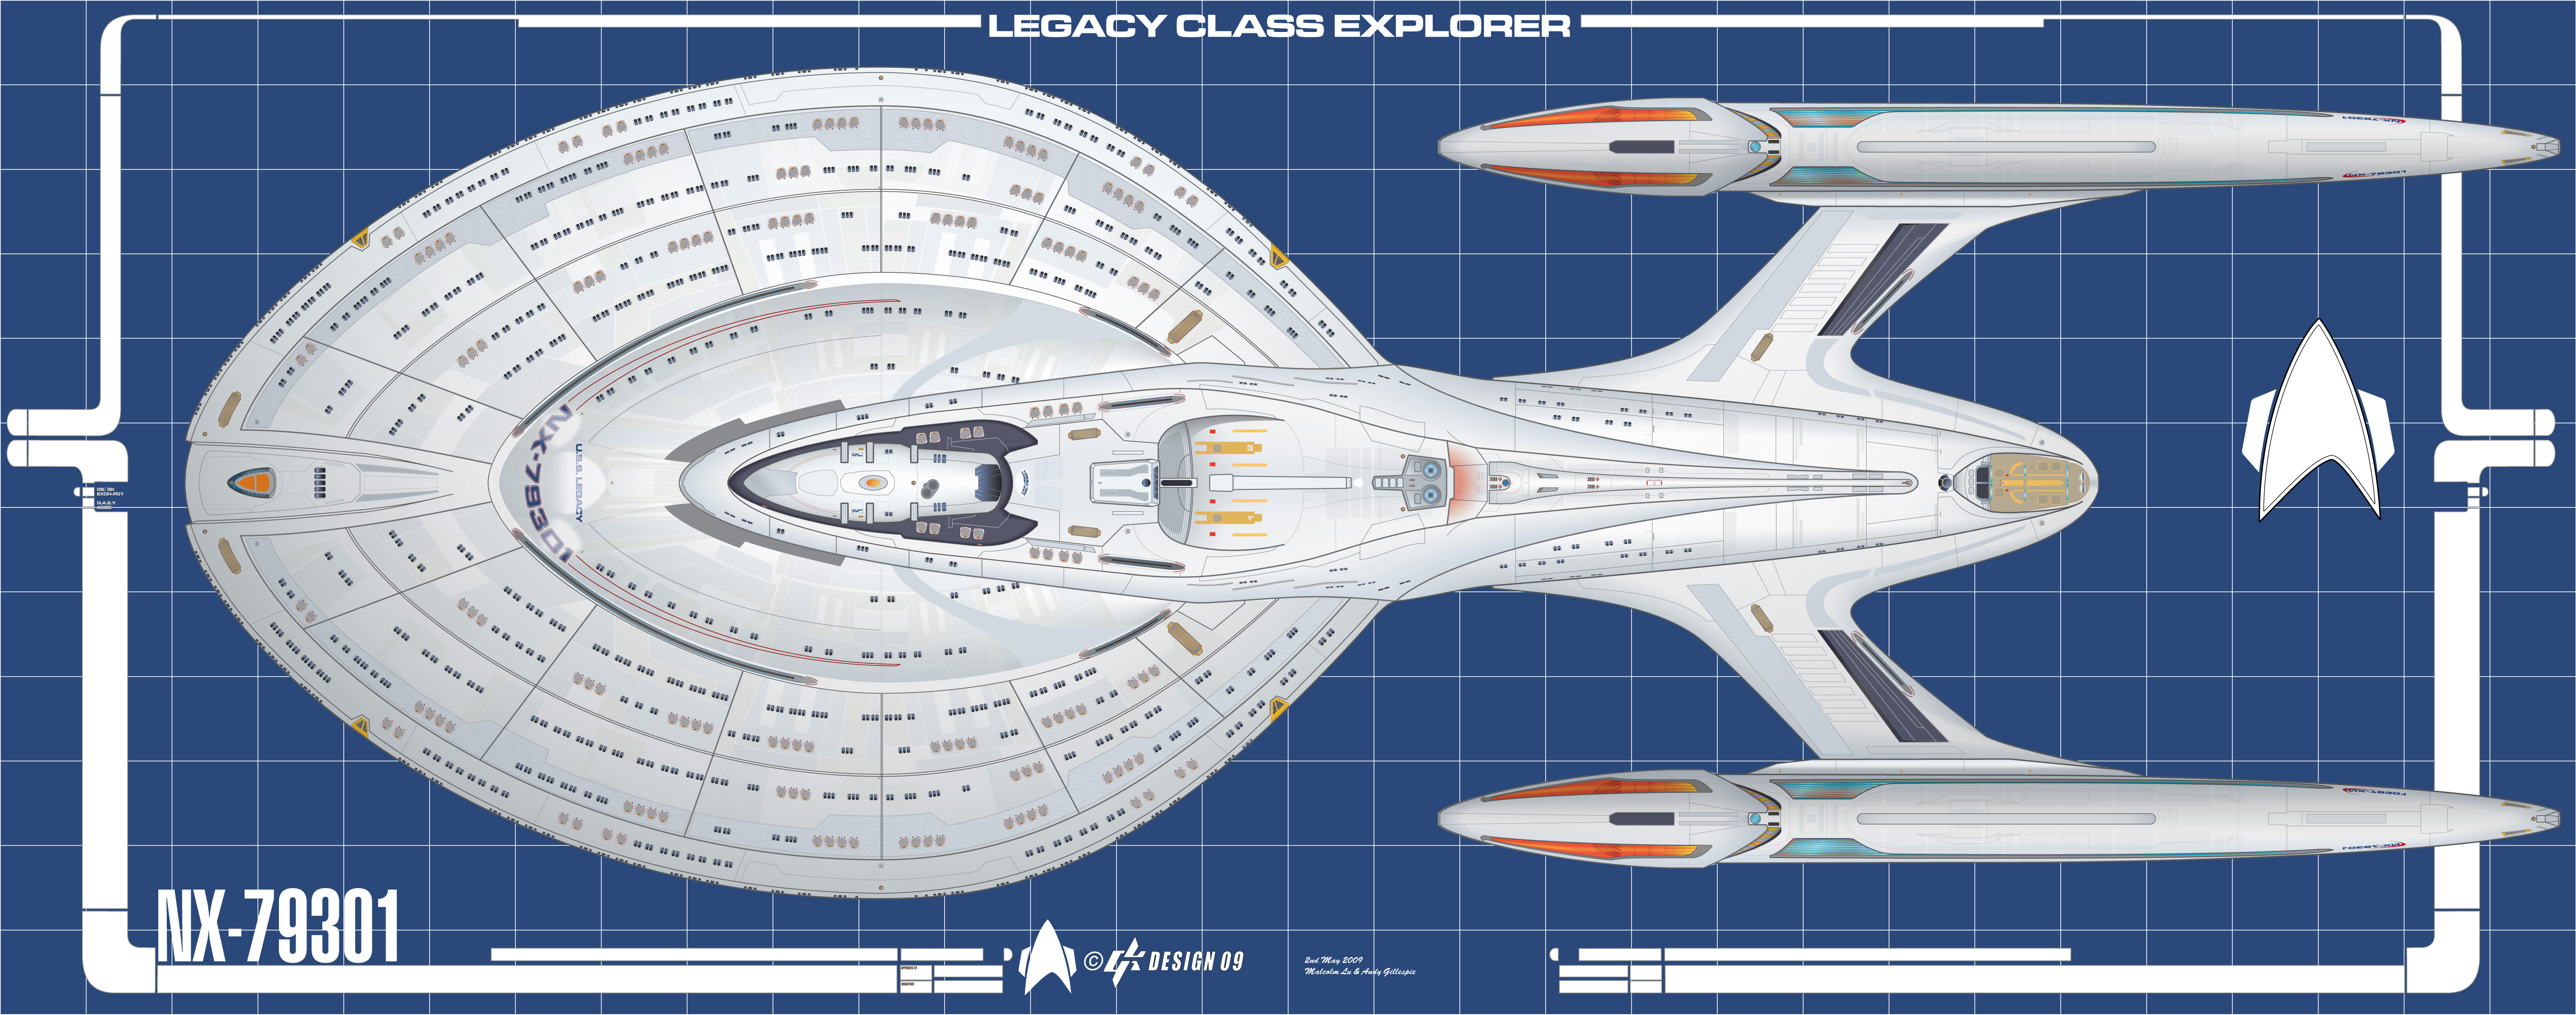 Legacy class mk 2 blueprint 2 by galen82 on deviantart legacy class mk 2 blueprint 2 by galen82 malvernweather Images